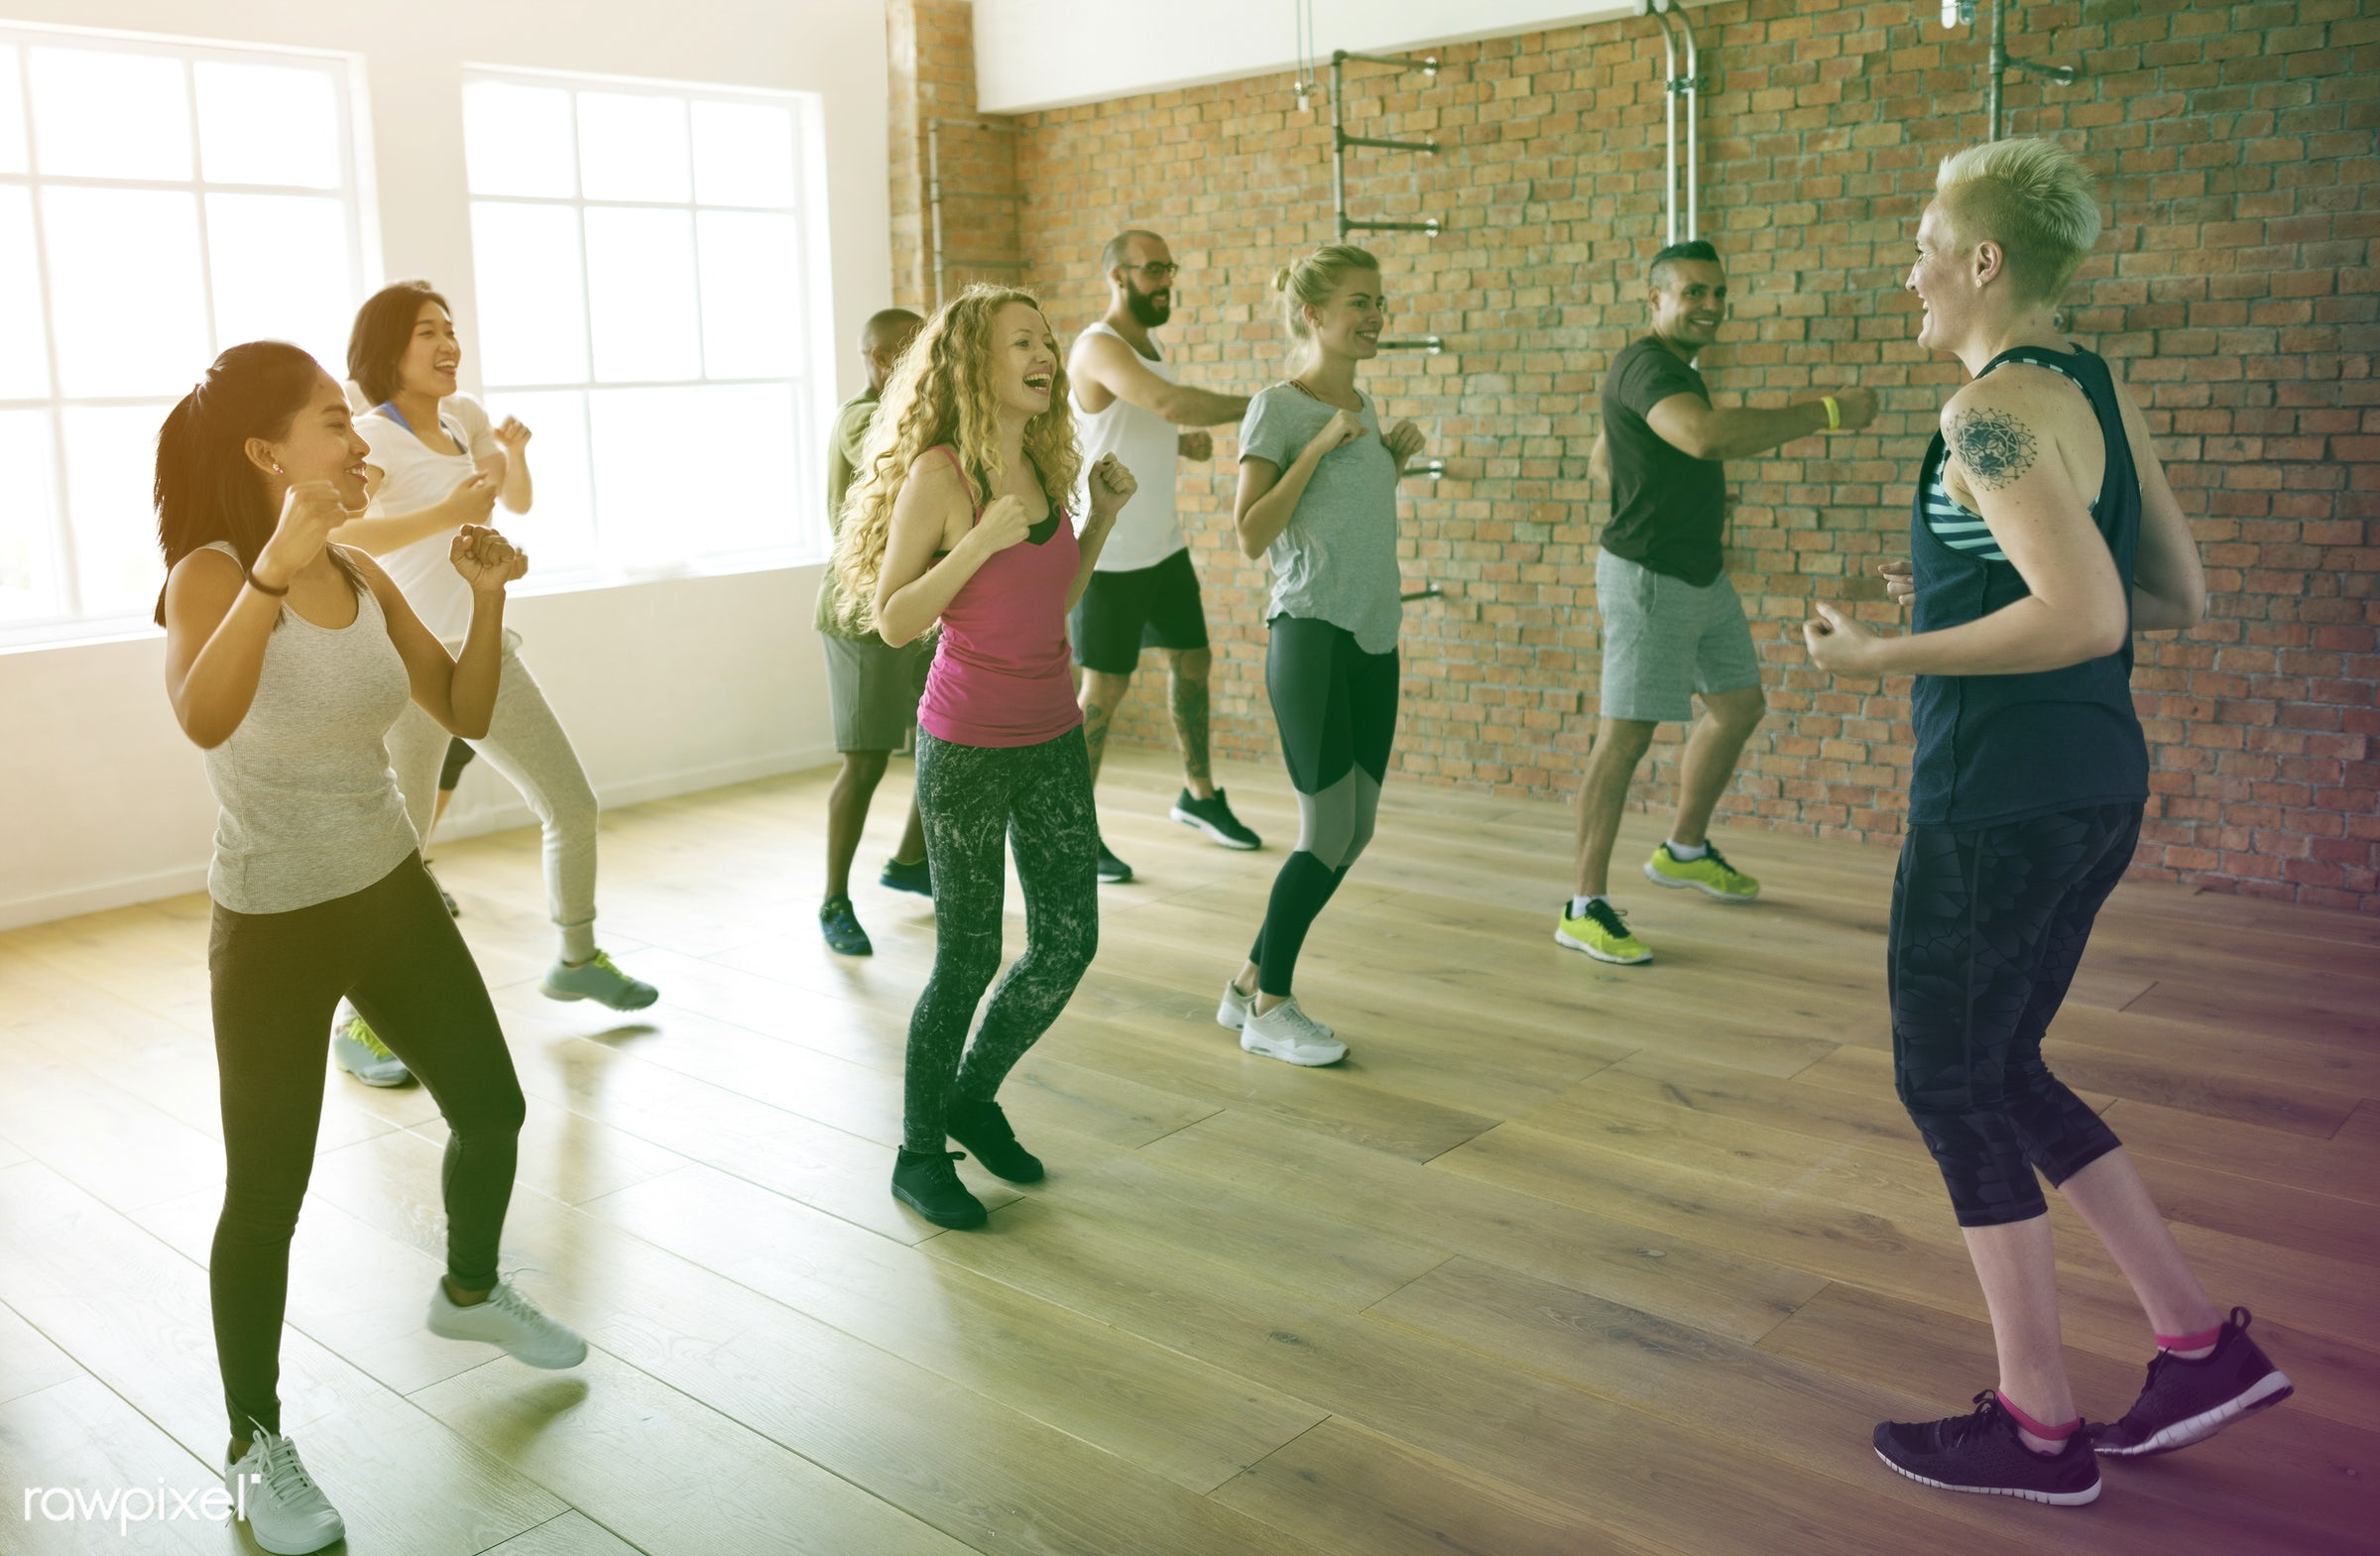 respiration, physical, variation, fitness clothing, recreation, people, stretching, together, lomo, practicing, lifestyle,...